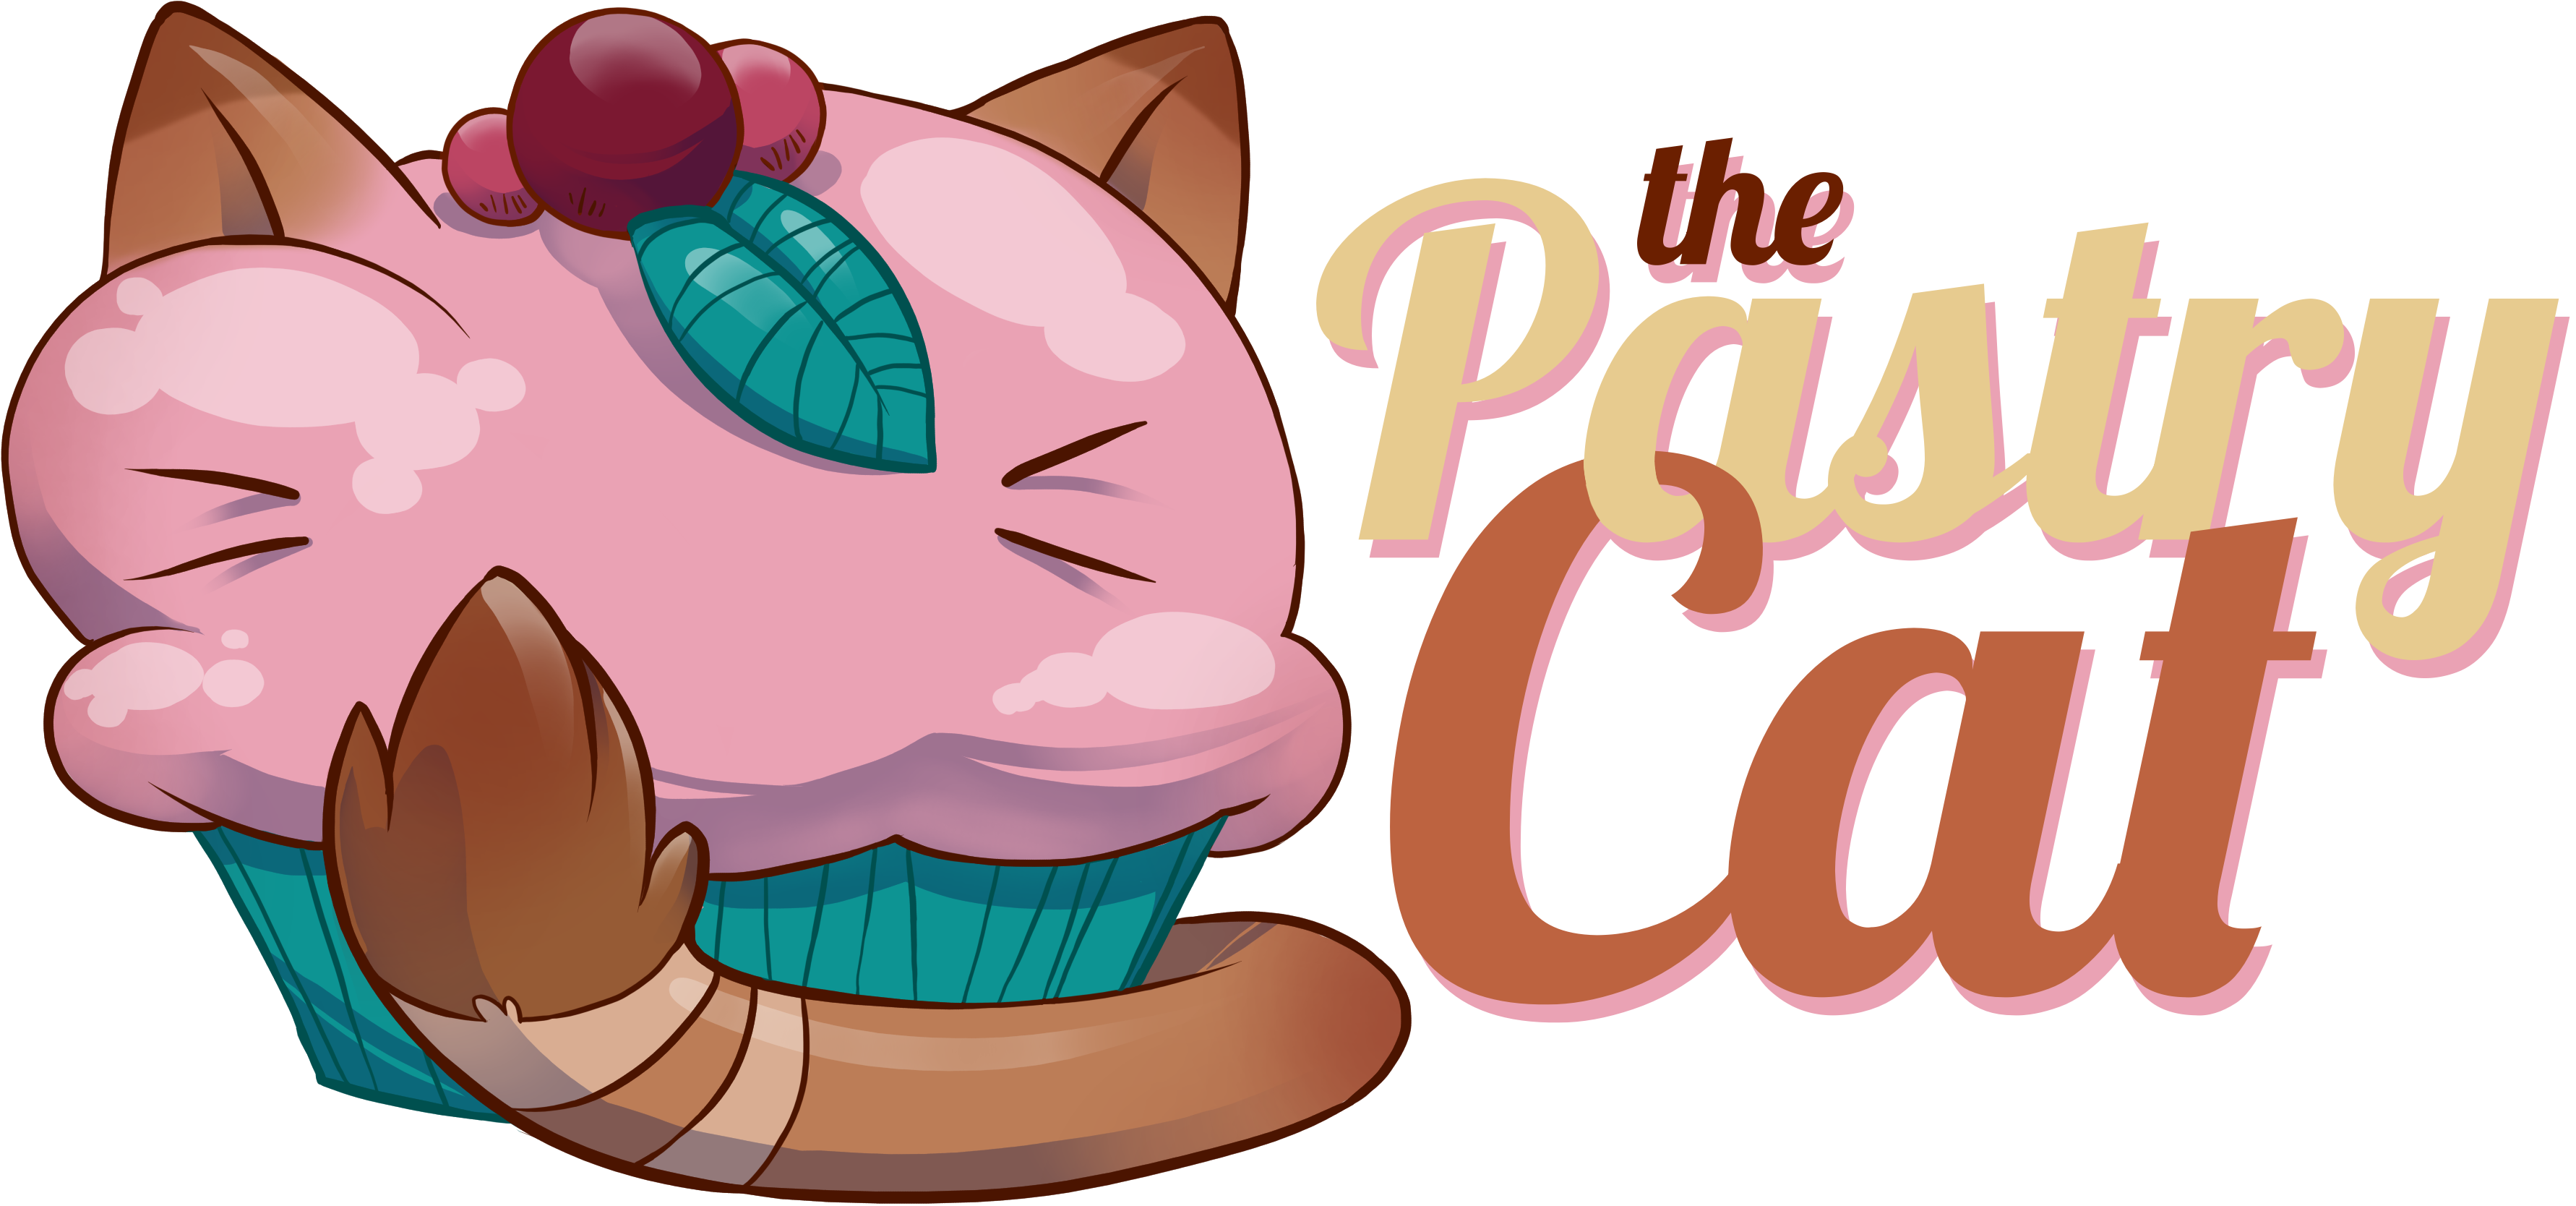 the Pastry Cat